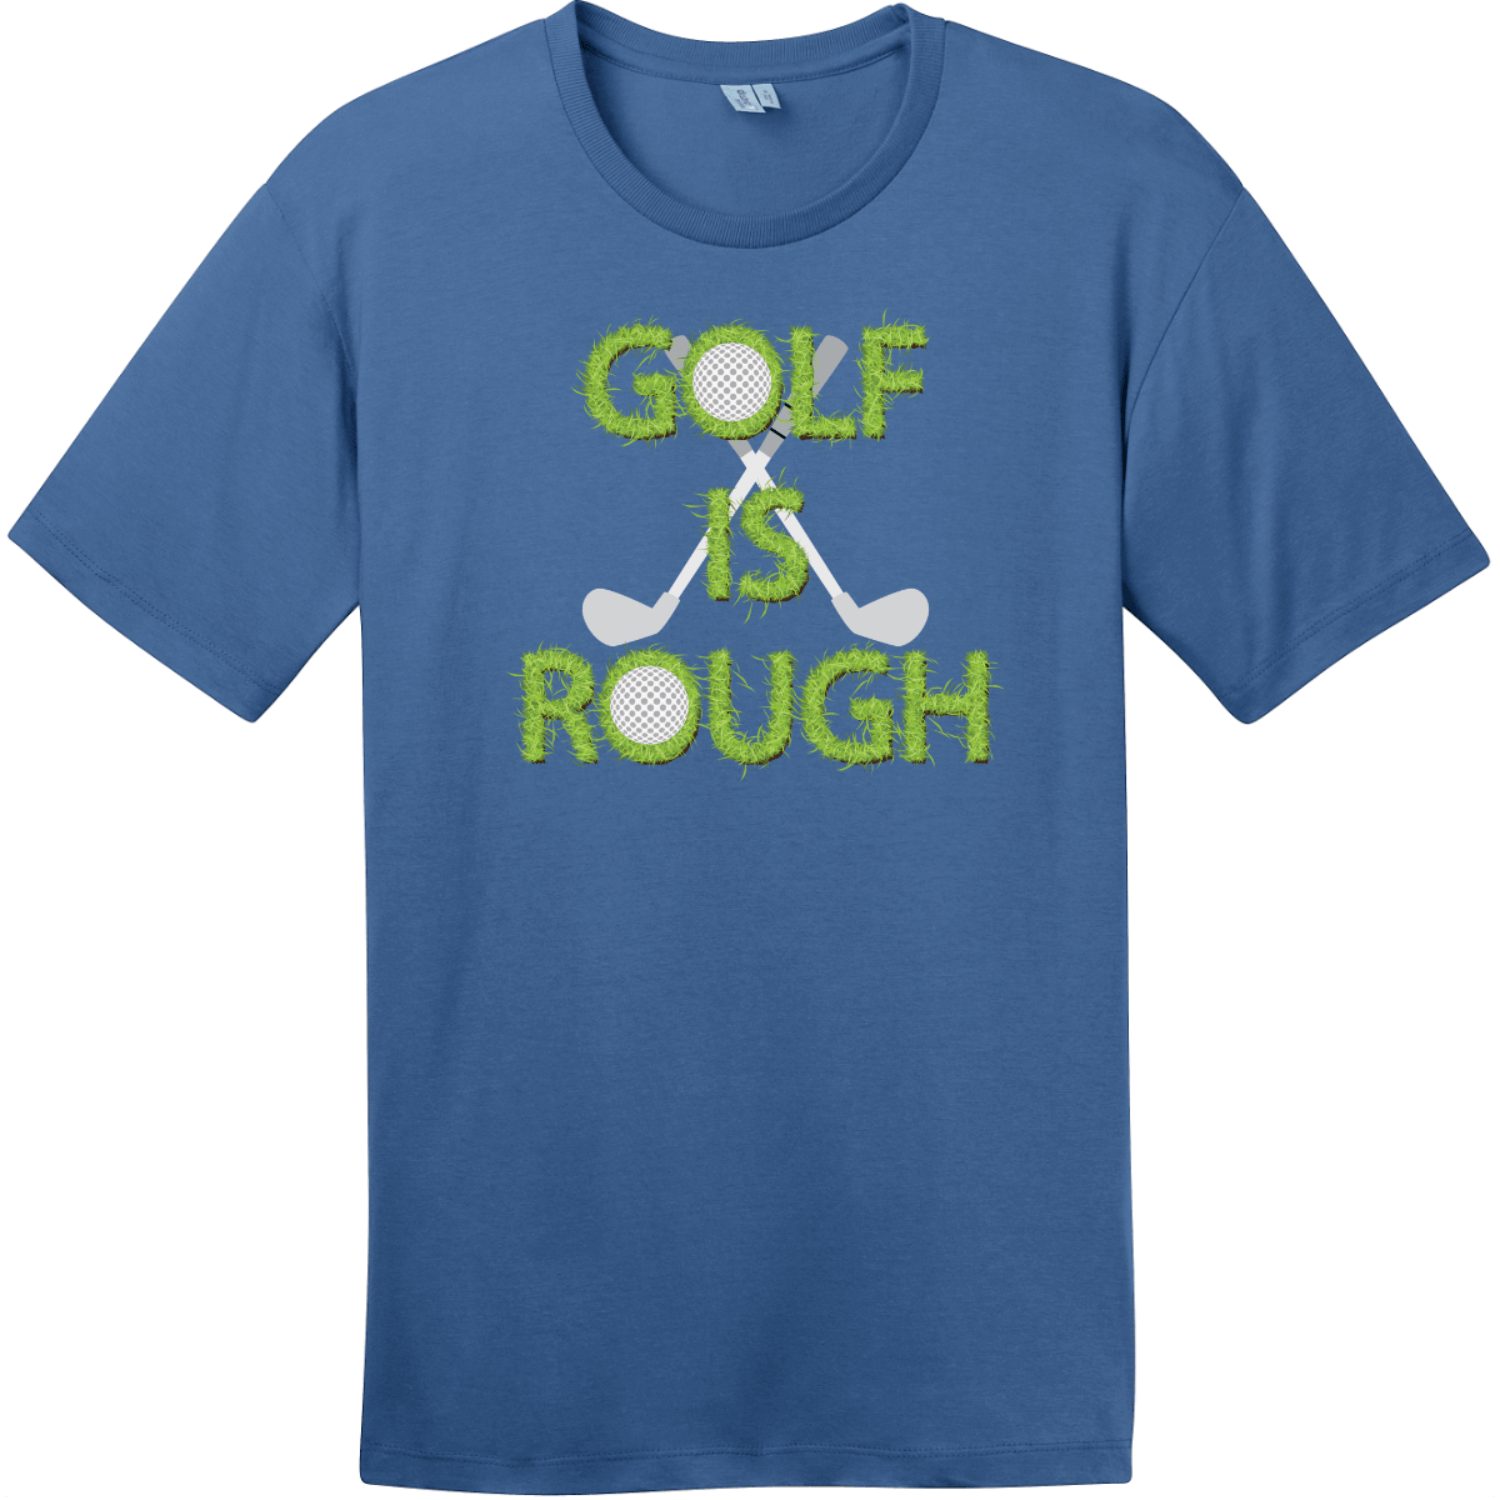 Golf Is Rough Funny Golf T-Shirt Maritime Blue District Perfect Weight Tee DT104